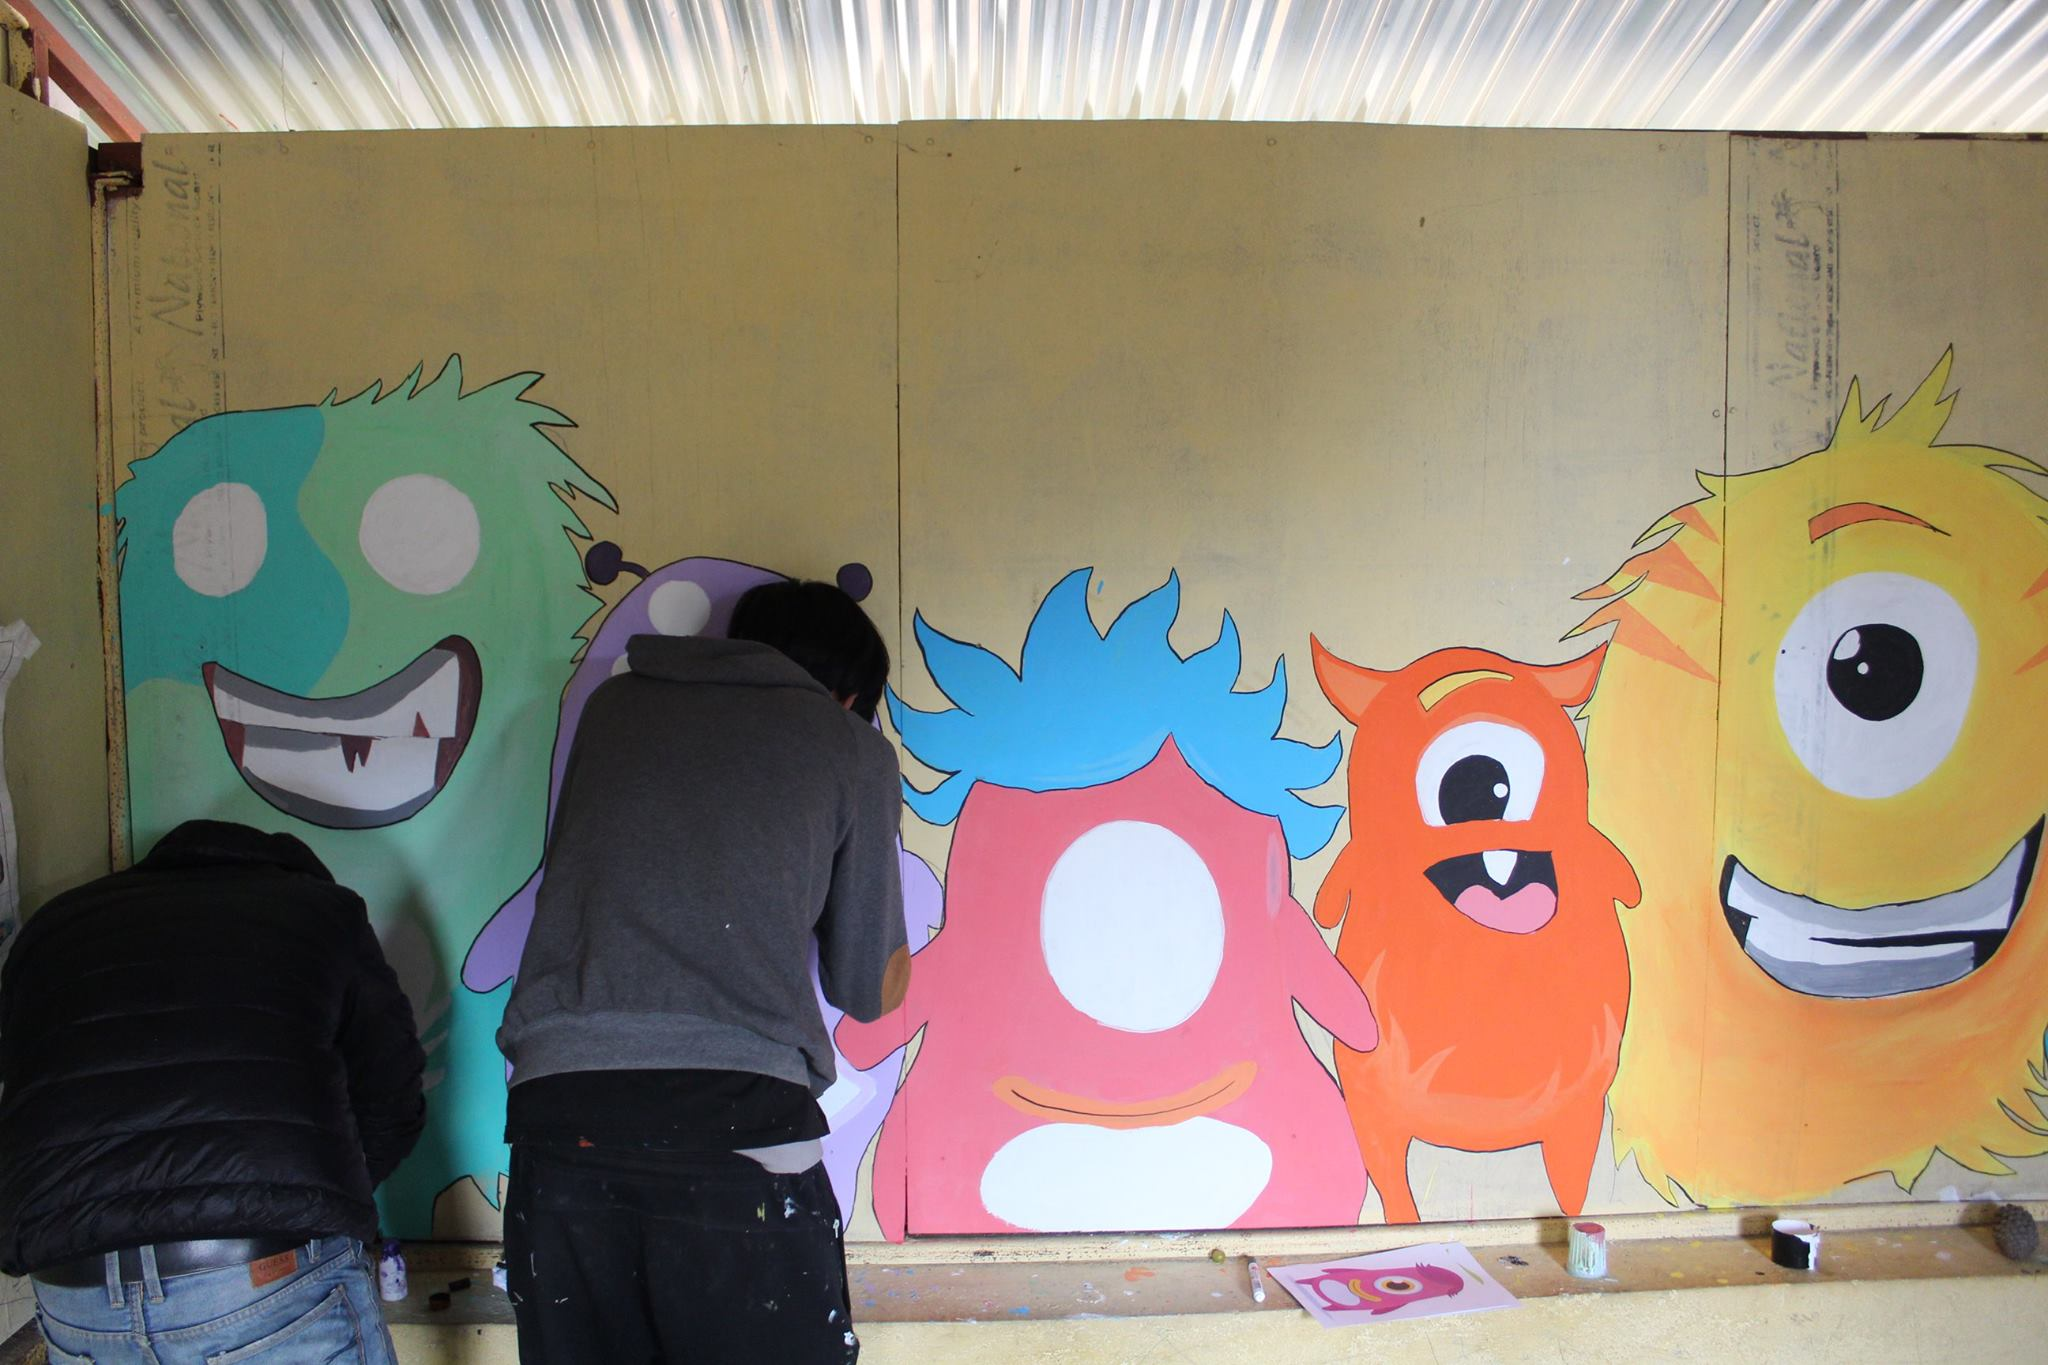 Painting the school with love